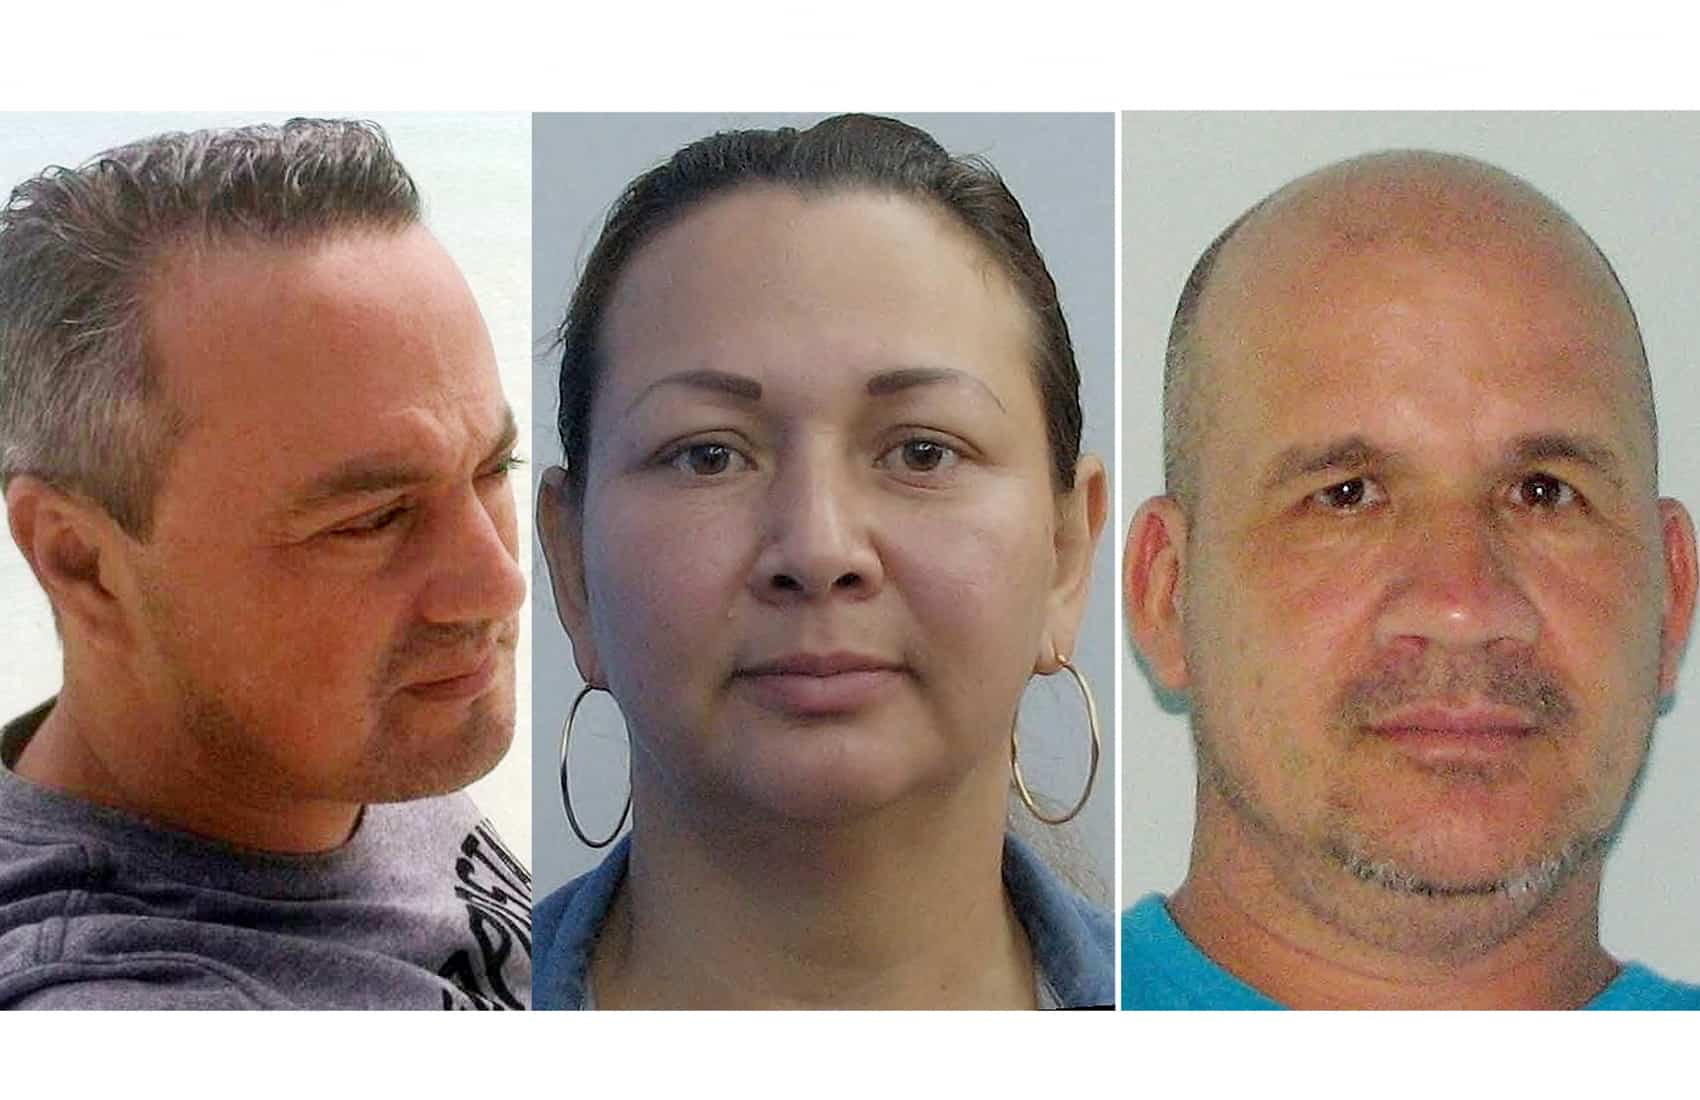 Costa Ricans Rafael Garbanzo Cascante (L), 42, his wife Edith Alfaro Porras ©, 40, and Eliécer Ruiz Ureña (R), 46, currently are reported as missing by the International Police.